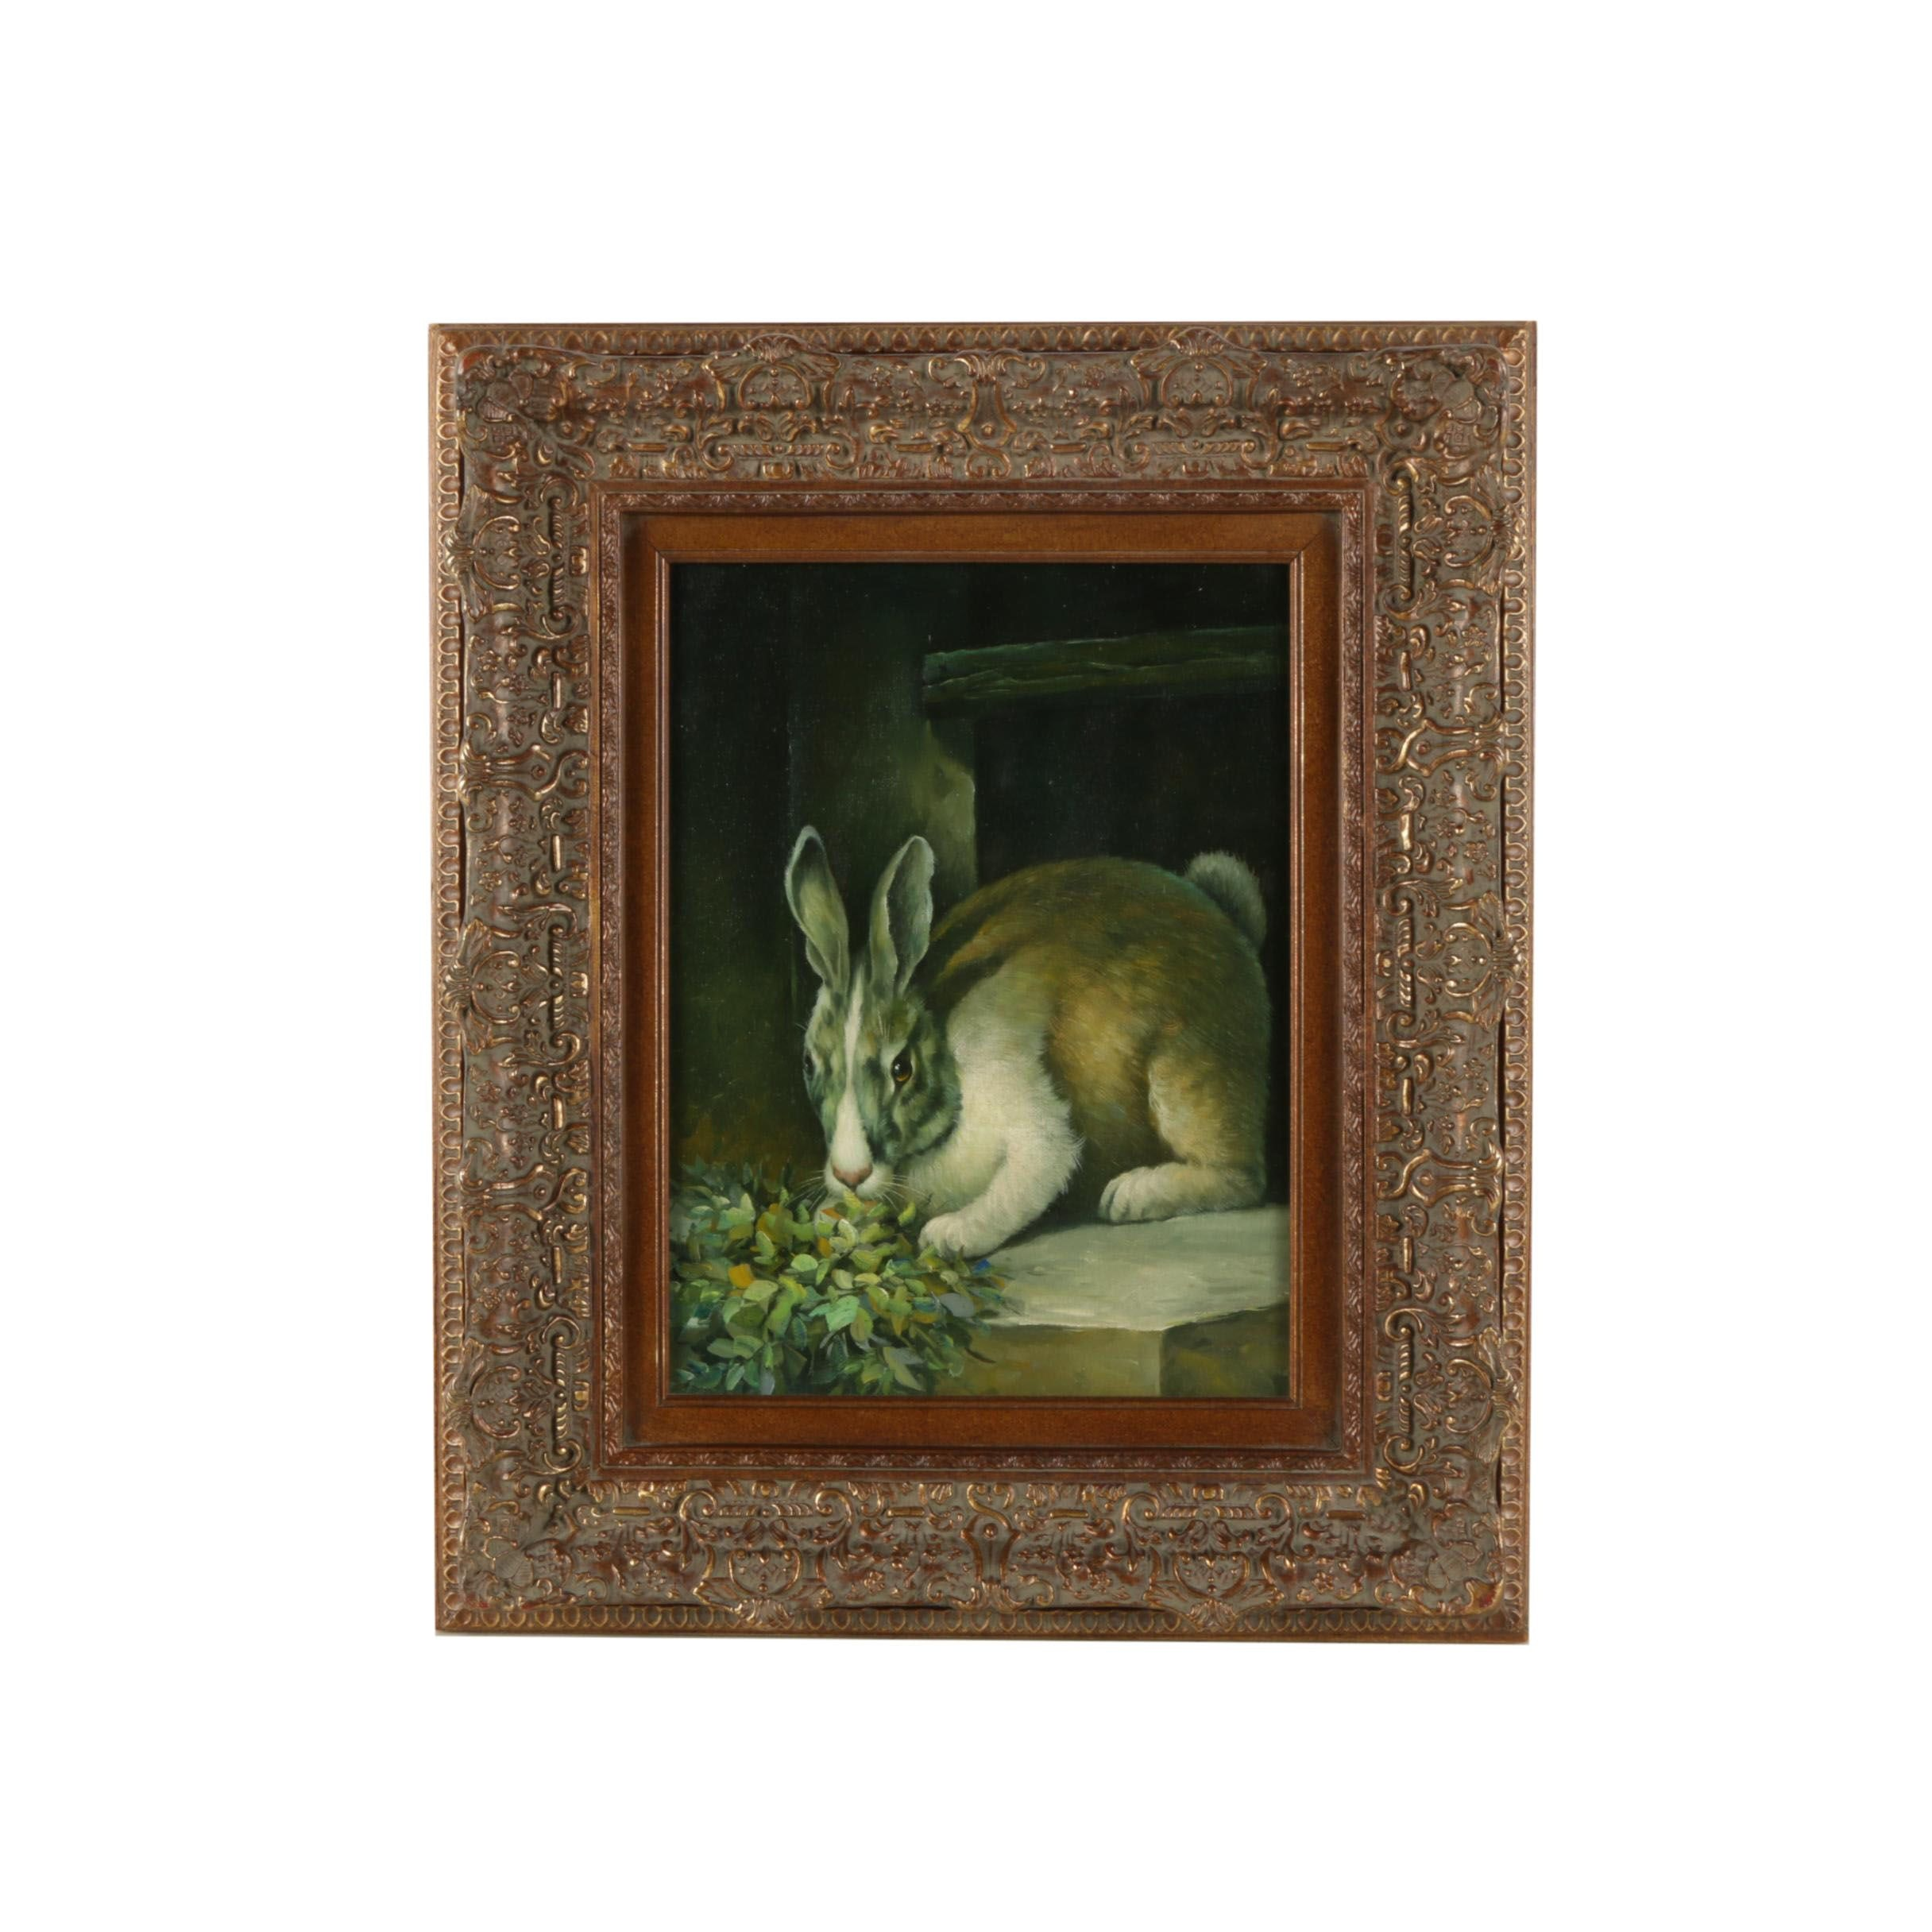 Oil Painting on Canvas of a Rabbit